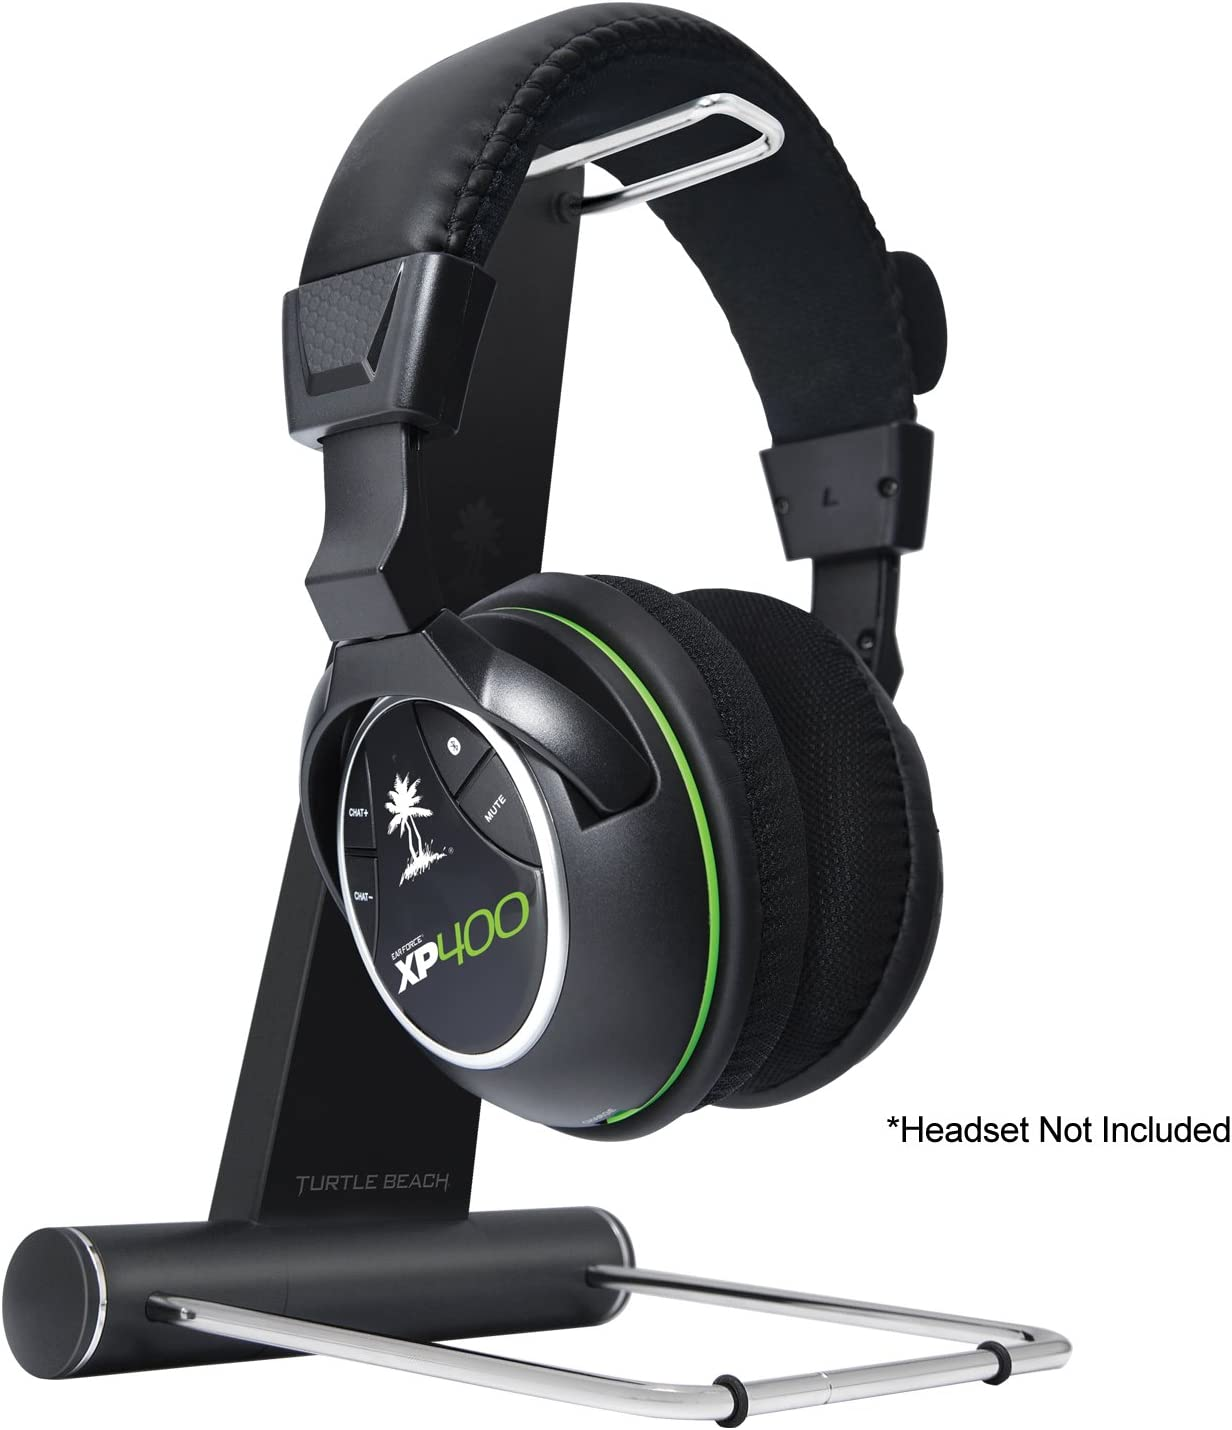 Ear Drive HS1 Headset Stand